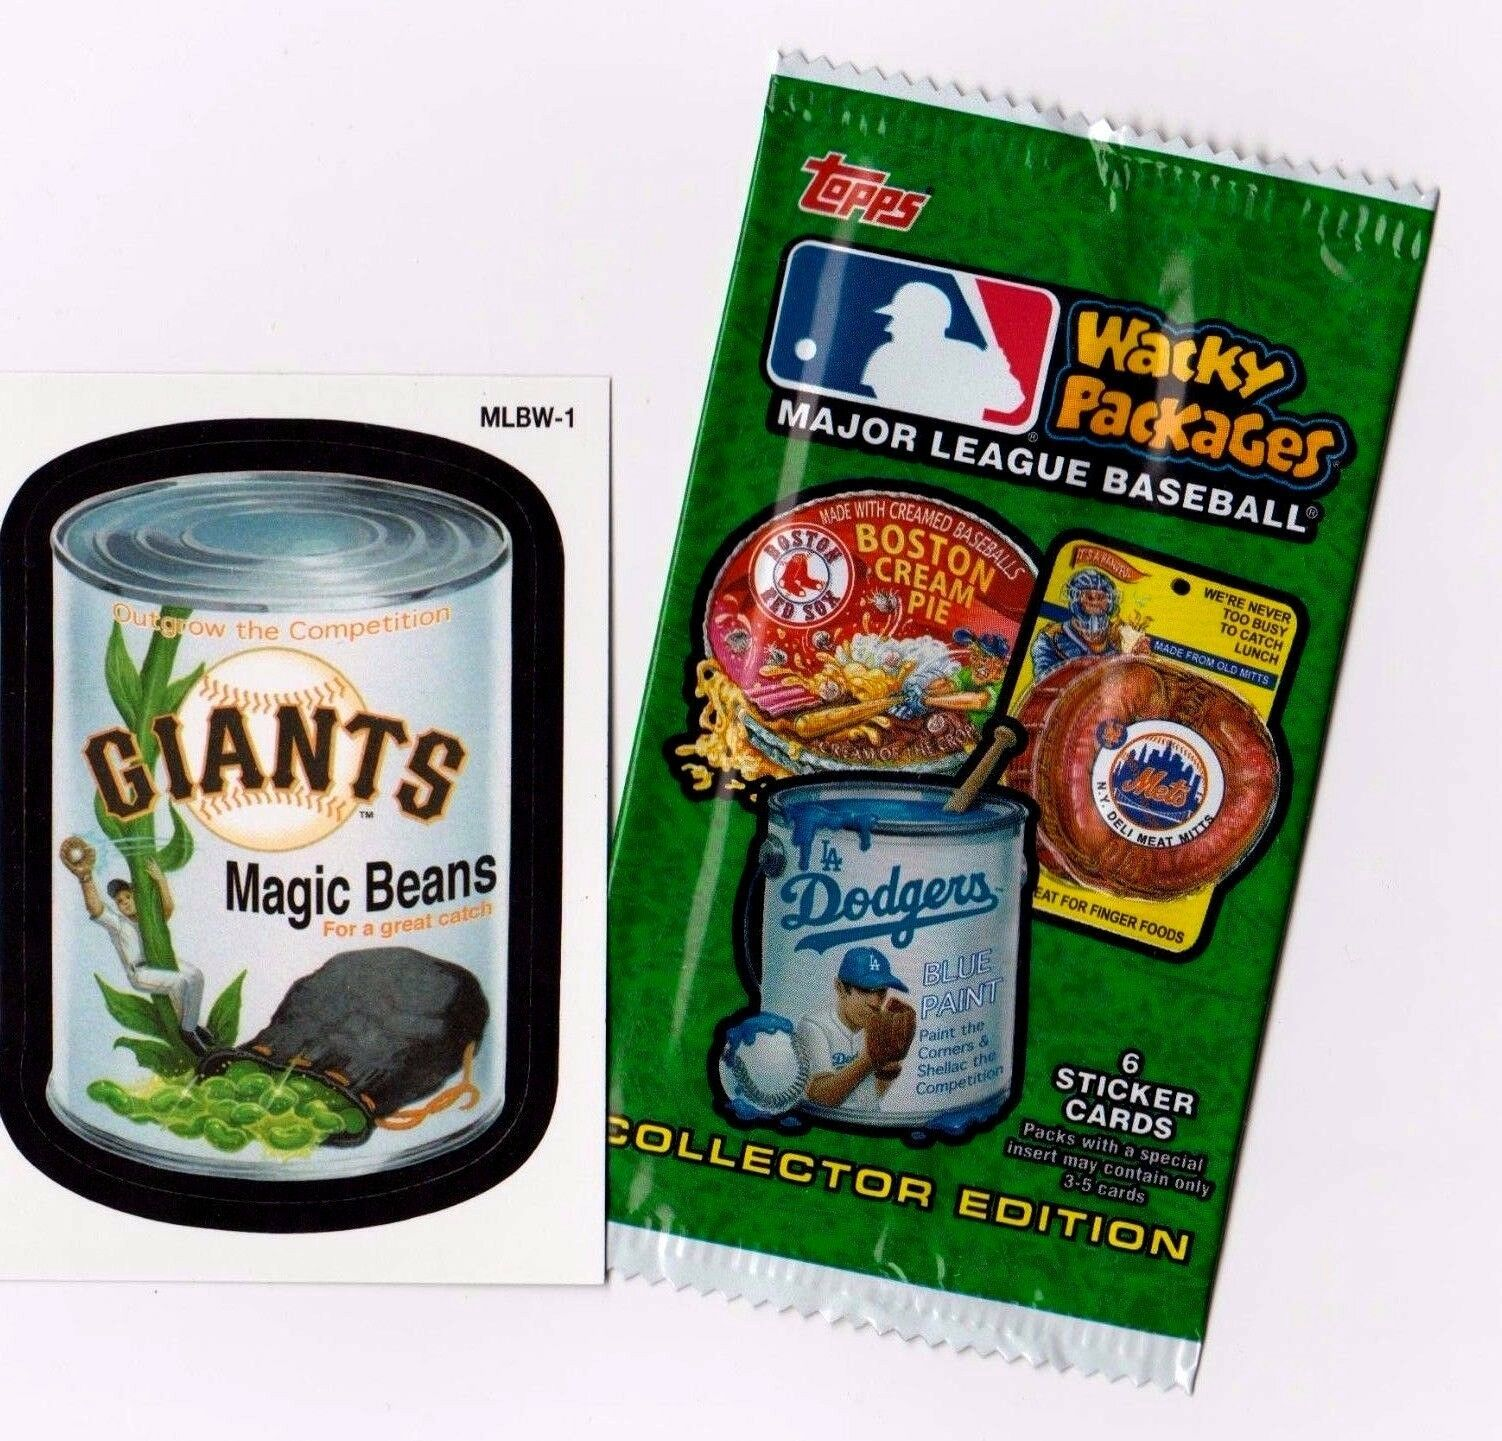 """2016 Wacky Packages Baseball Series 1 """"GIANTS MAGIC BEANS"""" Promo Sticker MLBW-1"""